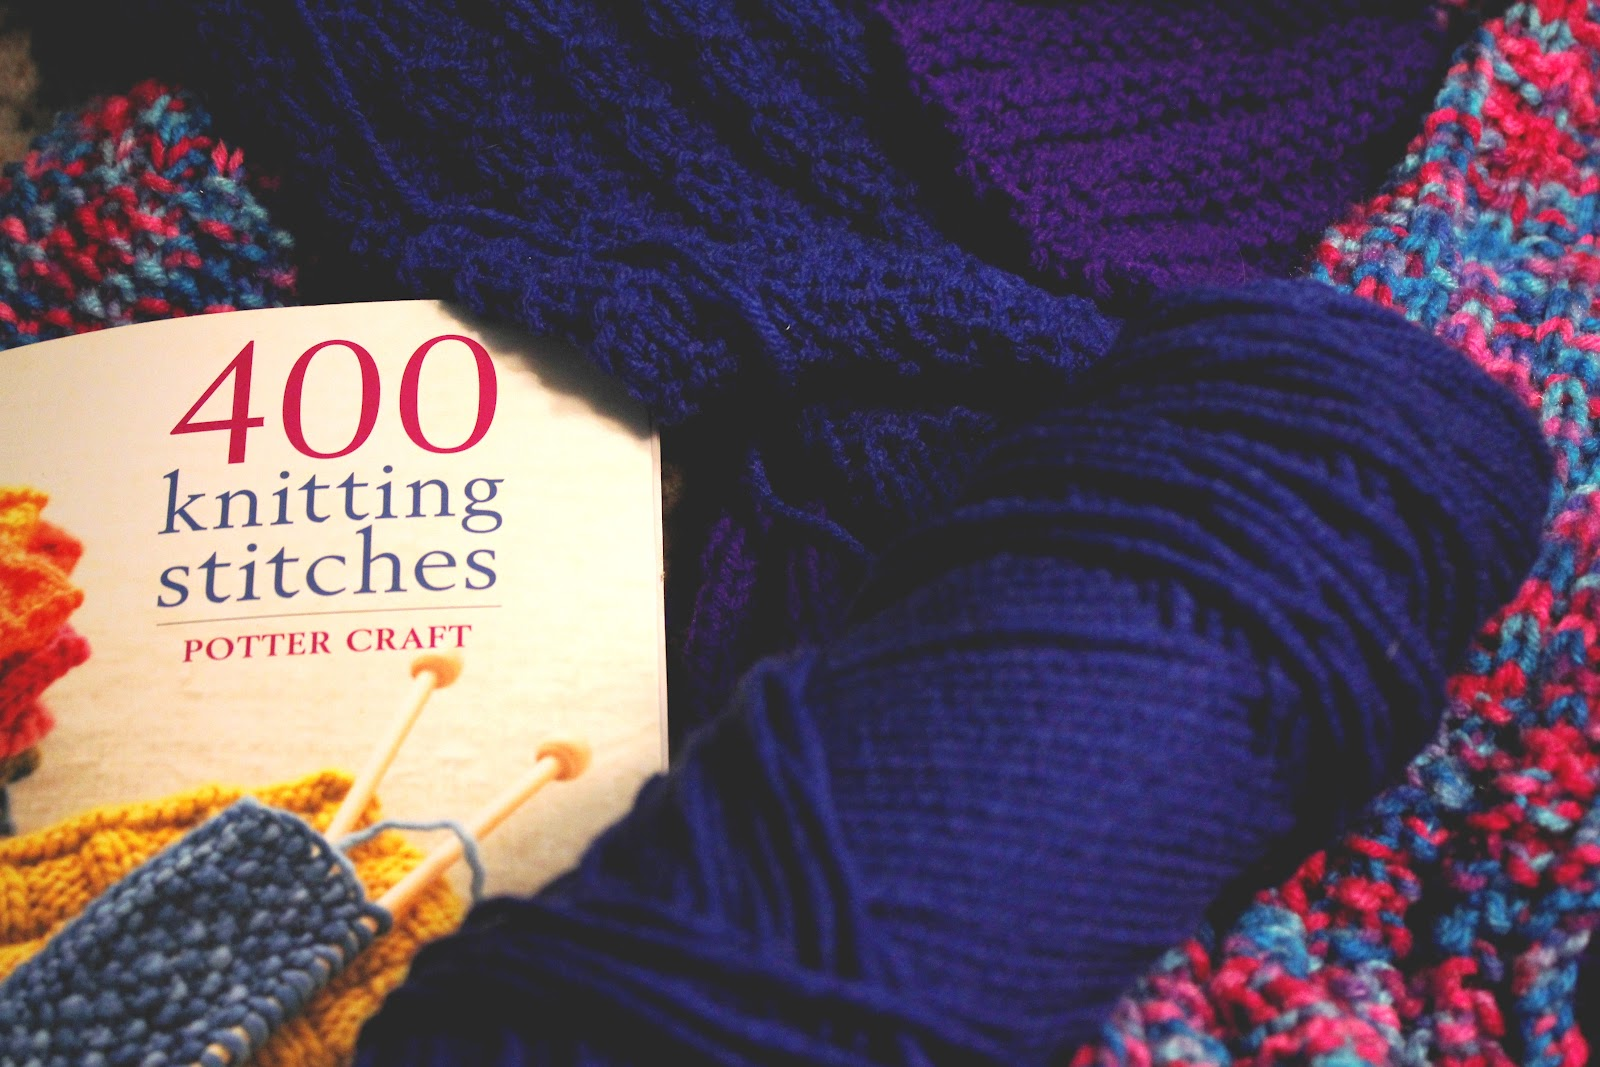 How To Increase The Number Of Stitches When Knitting : HoleyHoot Designs: Knitting Frenzy: 2